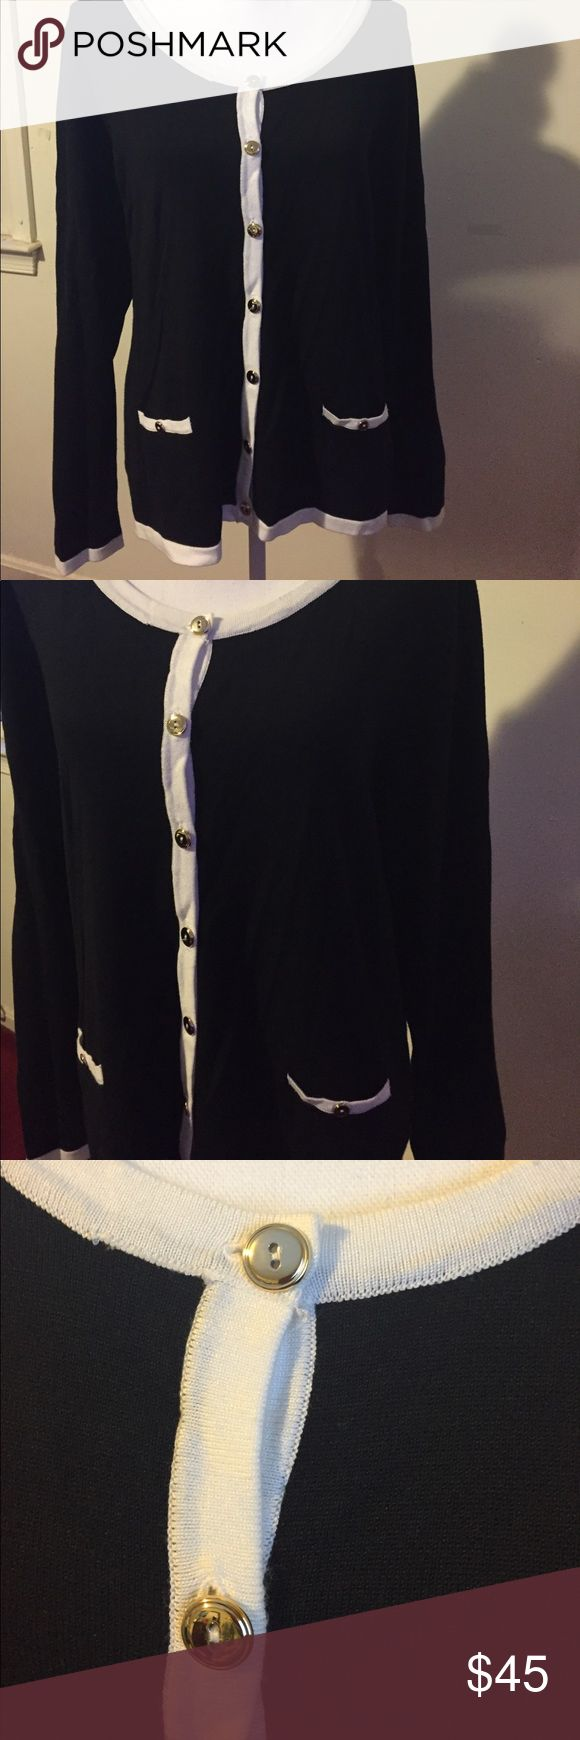 Black and white cardigan Black and white cardigan. 75% rayon and 25% polyester carolyn taylor Sweaters Cardigans